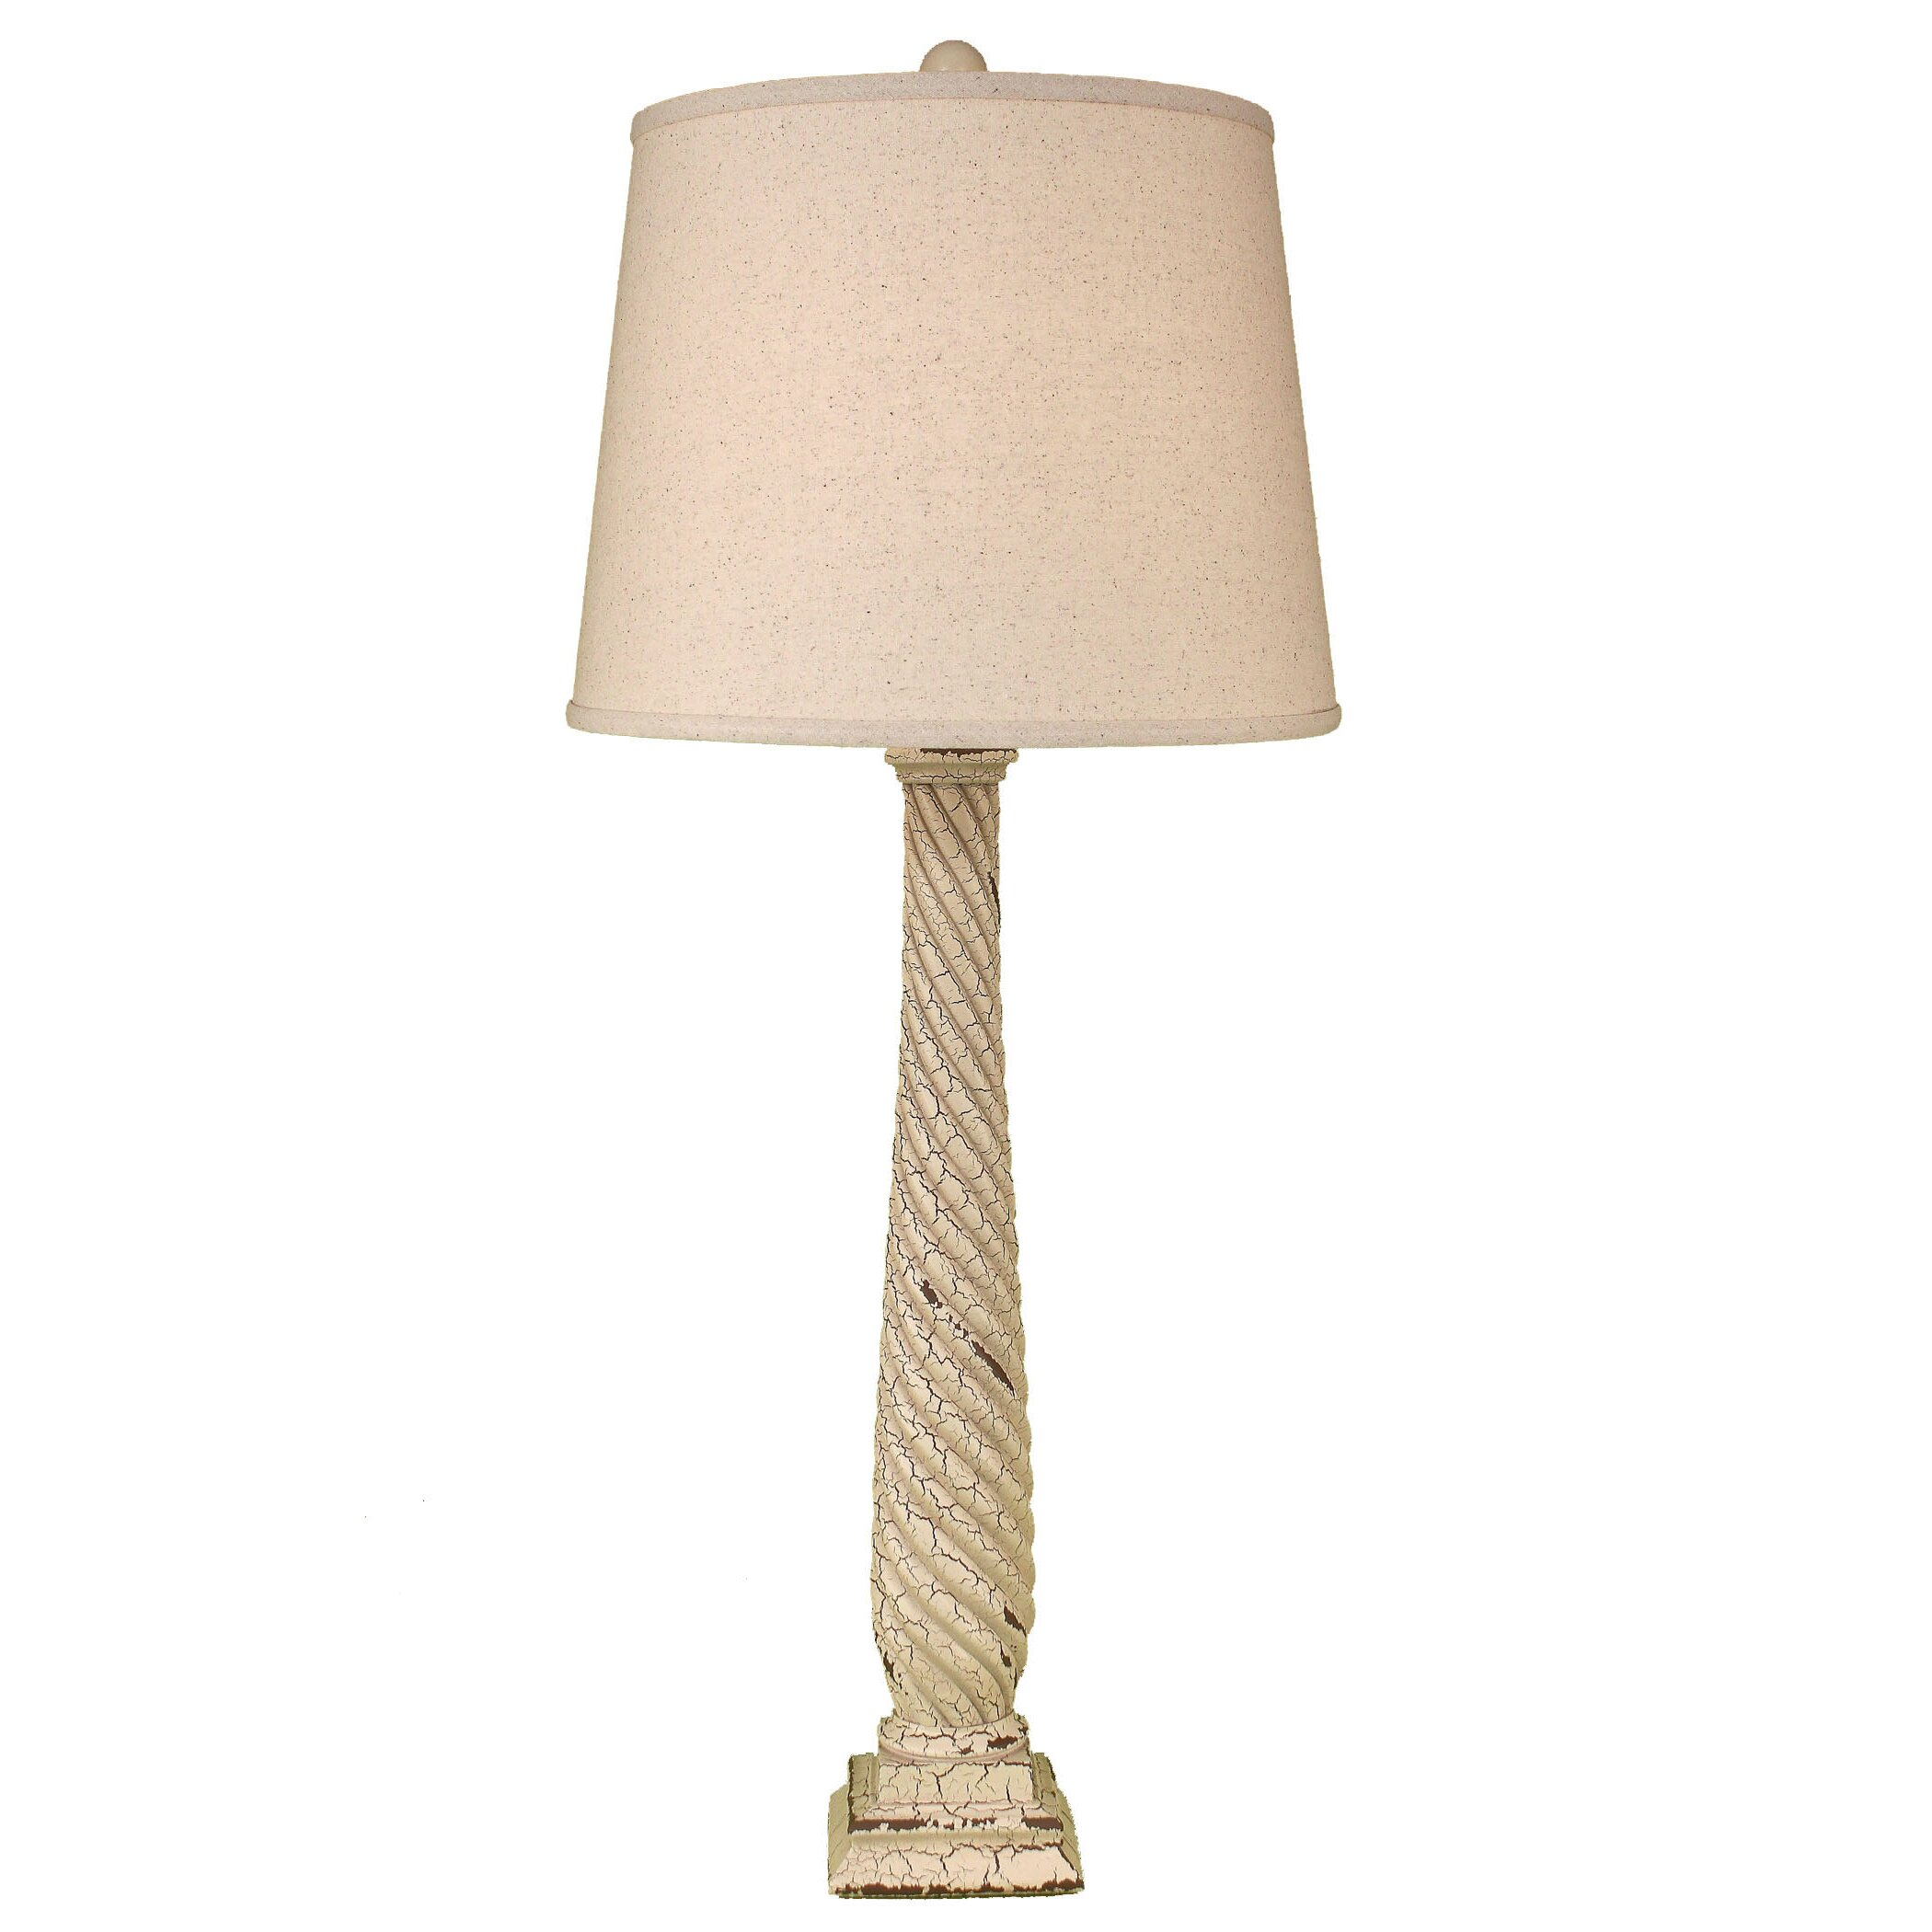 Coast Lamp Mfg Casual Living Tall Slender Swirl 375 H